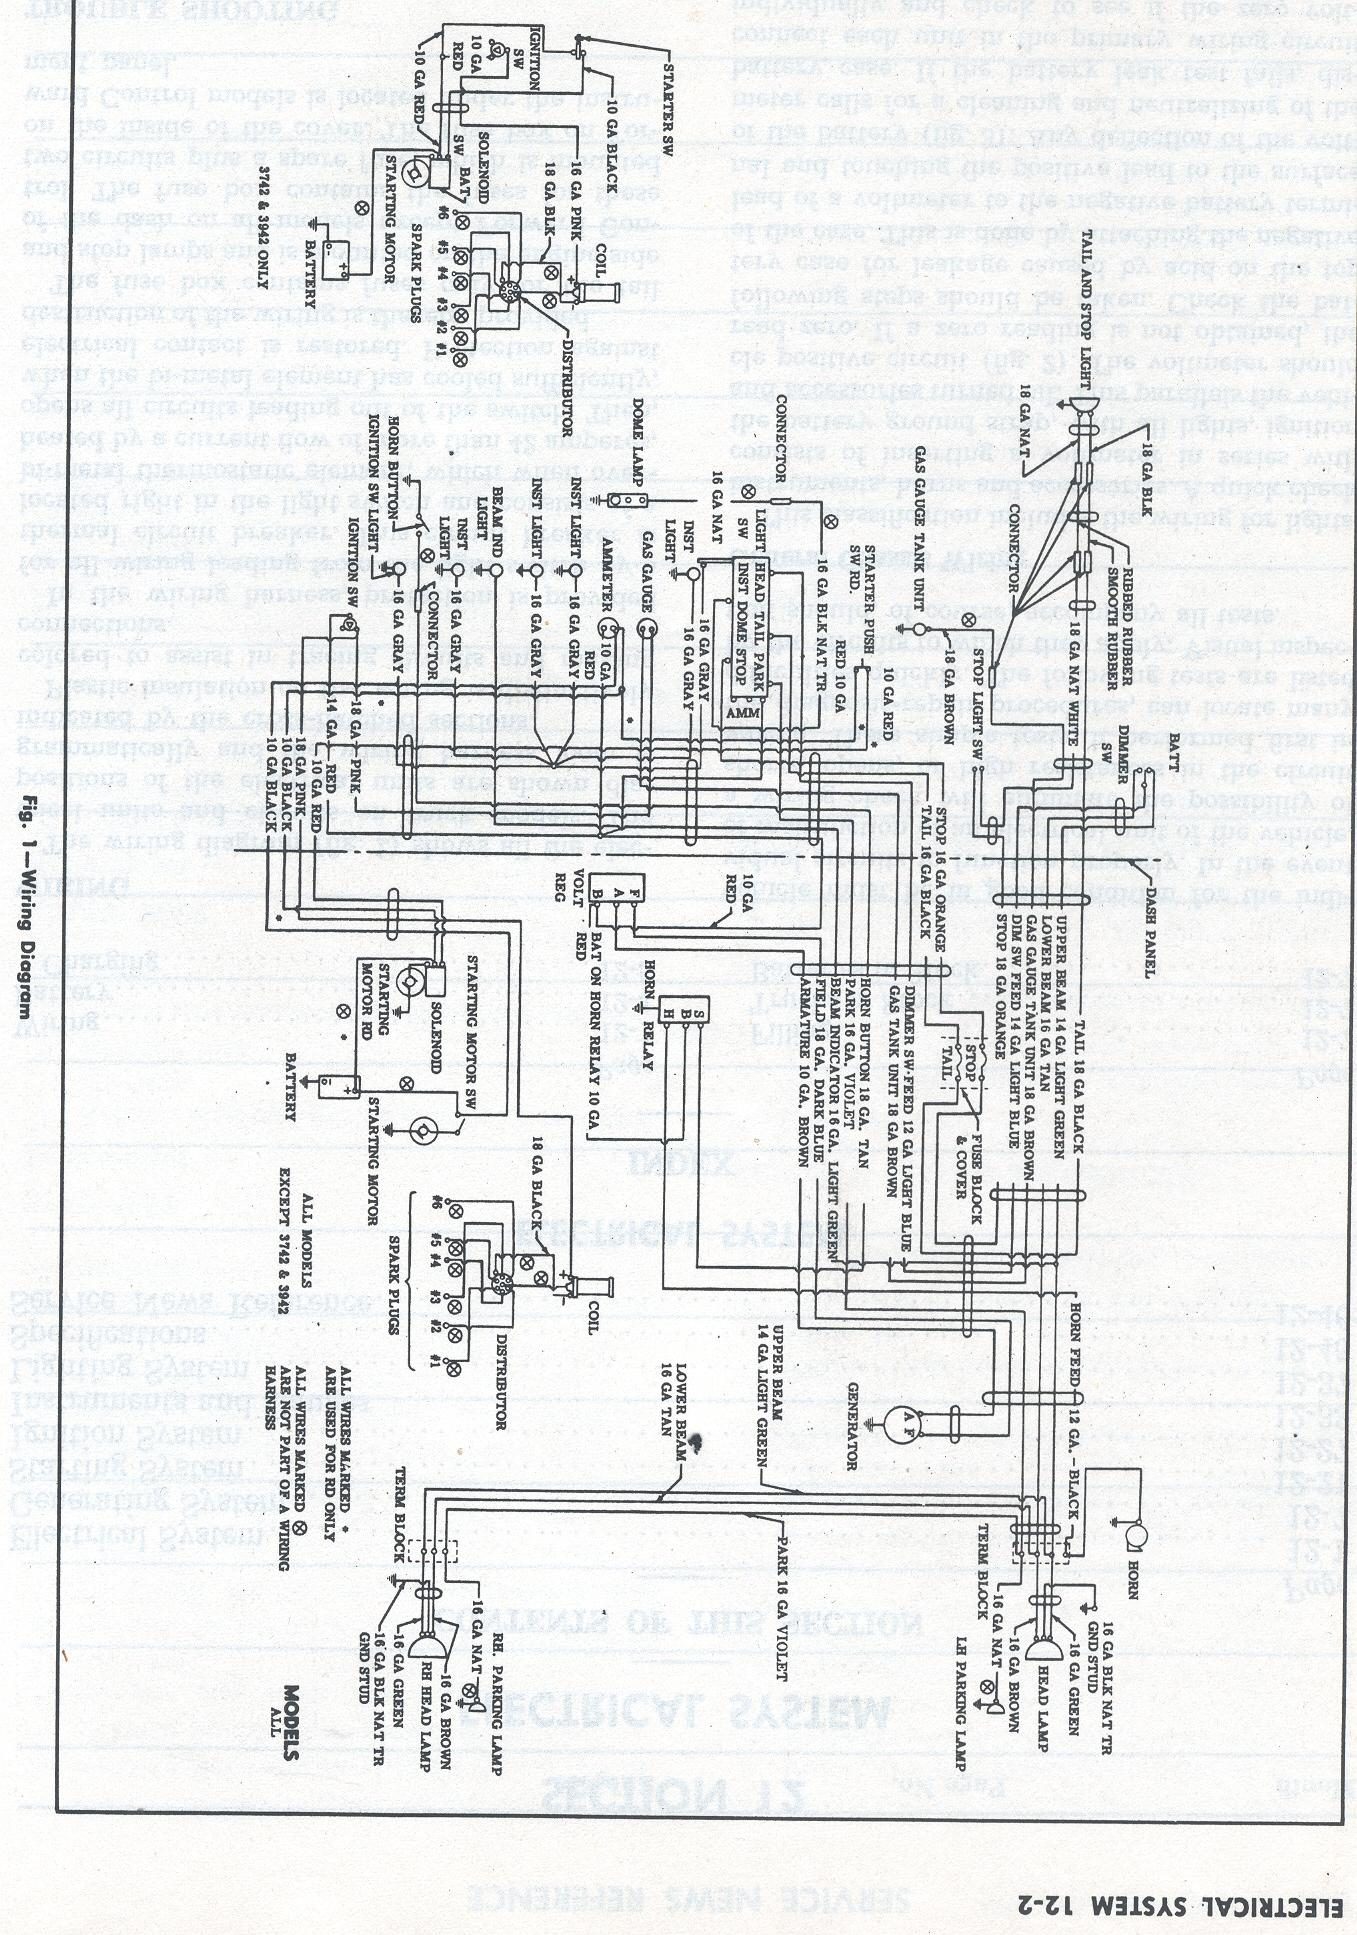 L175 Kubota Tractor Wiring Diagram moreover Flathead drawings electrical besides 2004 Silverado Heater Control Problems besides 741546 Power Mirror Question furthermore Propane Supplier Readies Dual Fuel System For Diesels. on truck wiring schematics